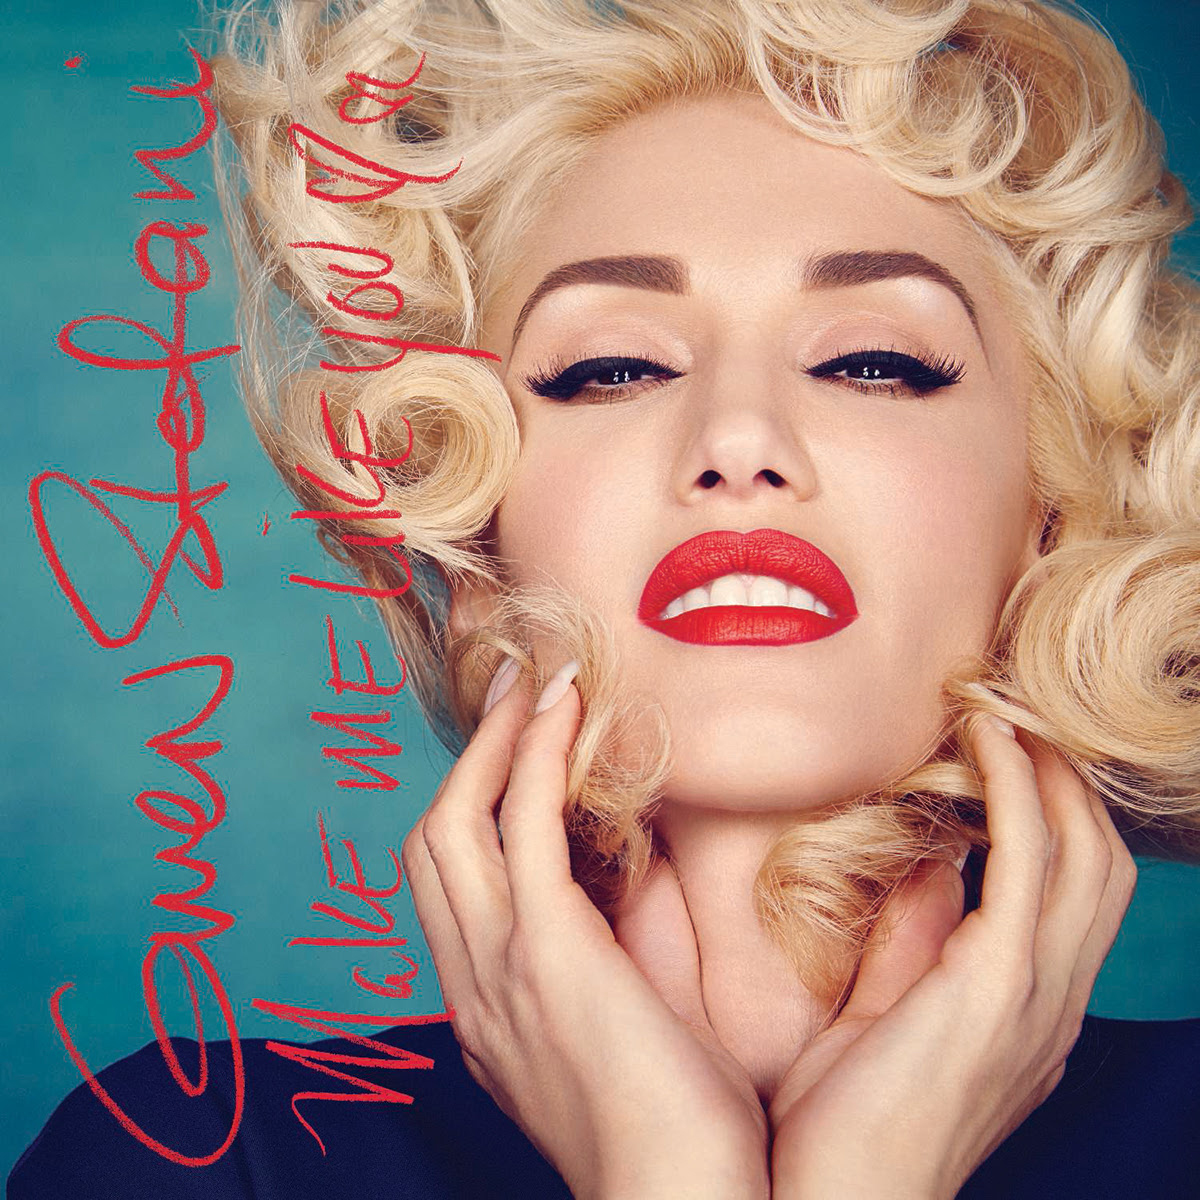 Gwen-Stefani-Make-Me-Like-You-2016-1200x1200